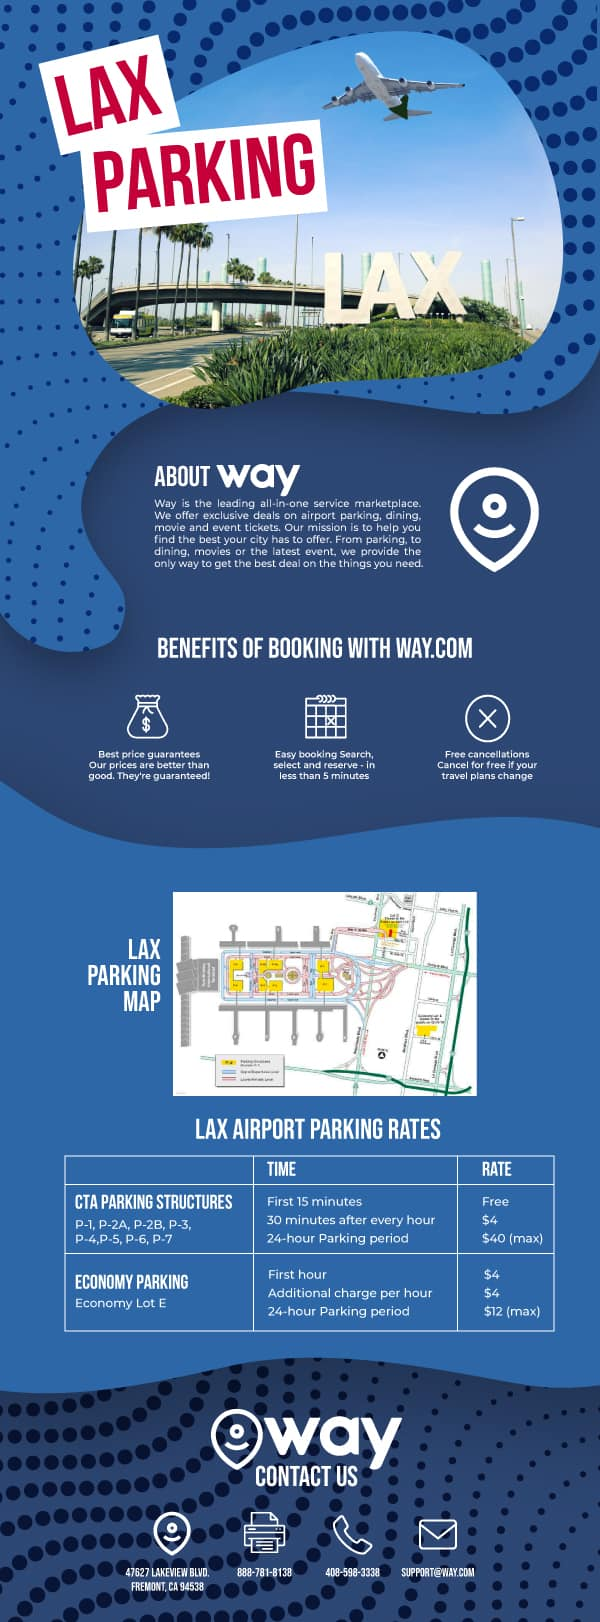 About Parking Near LAX Airport